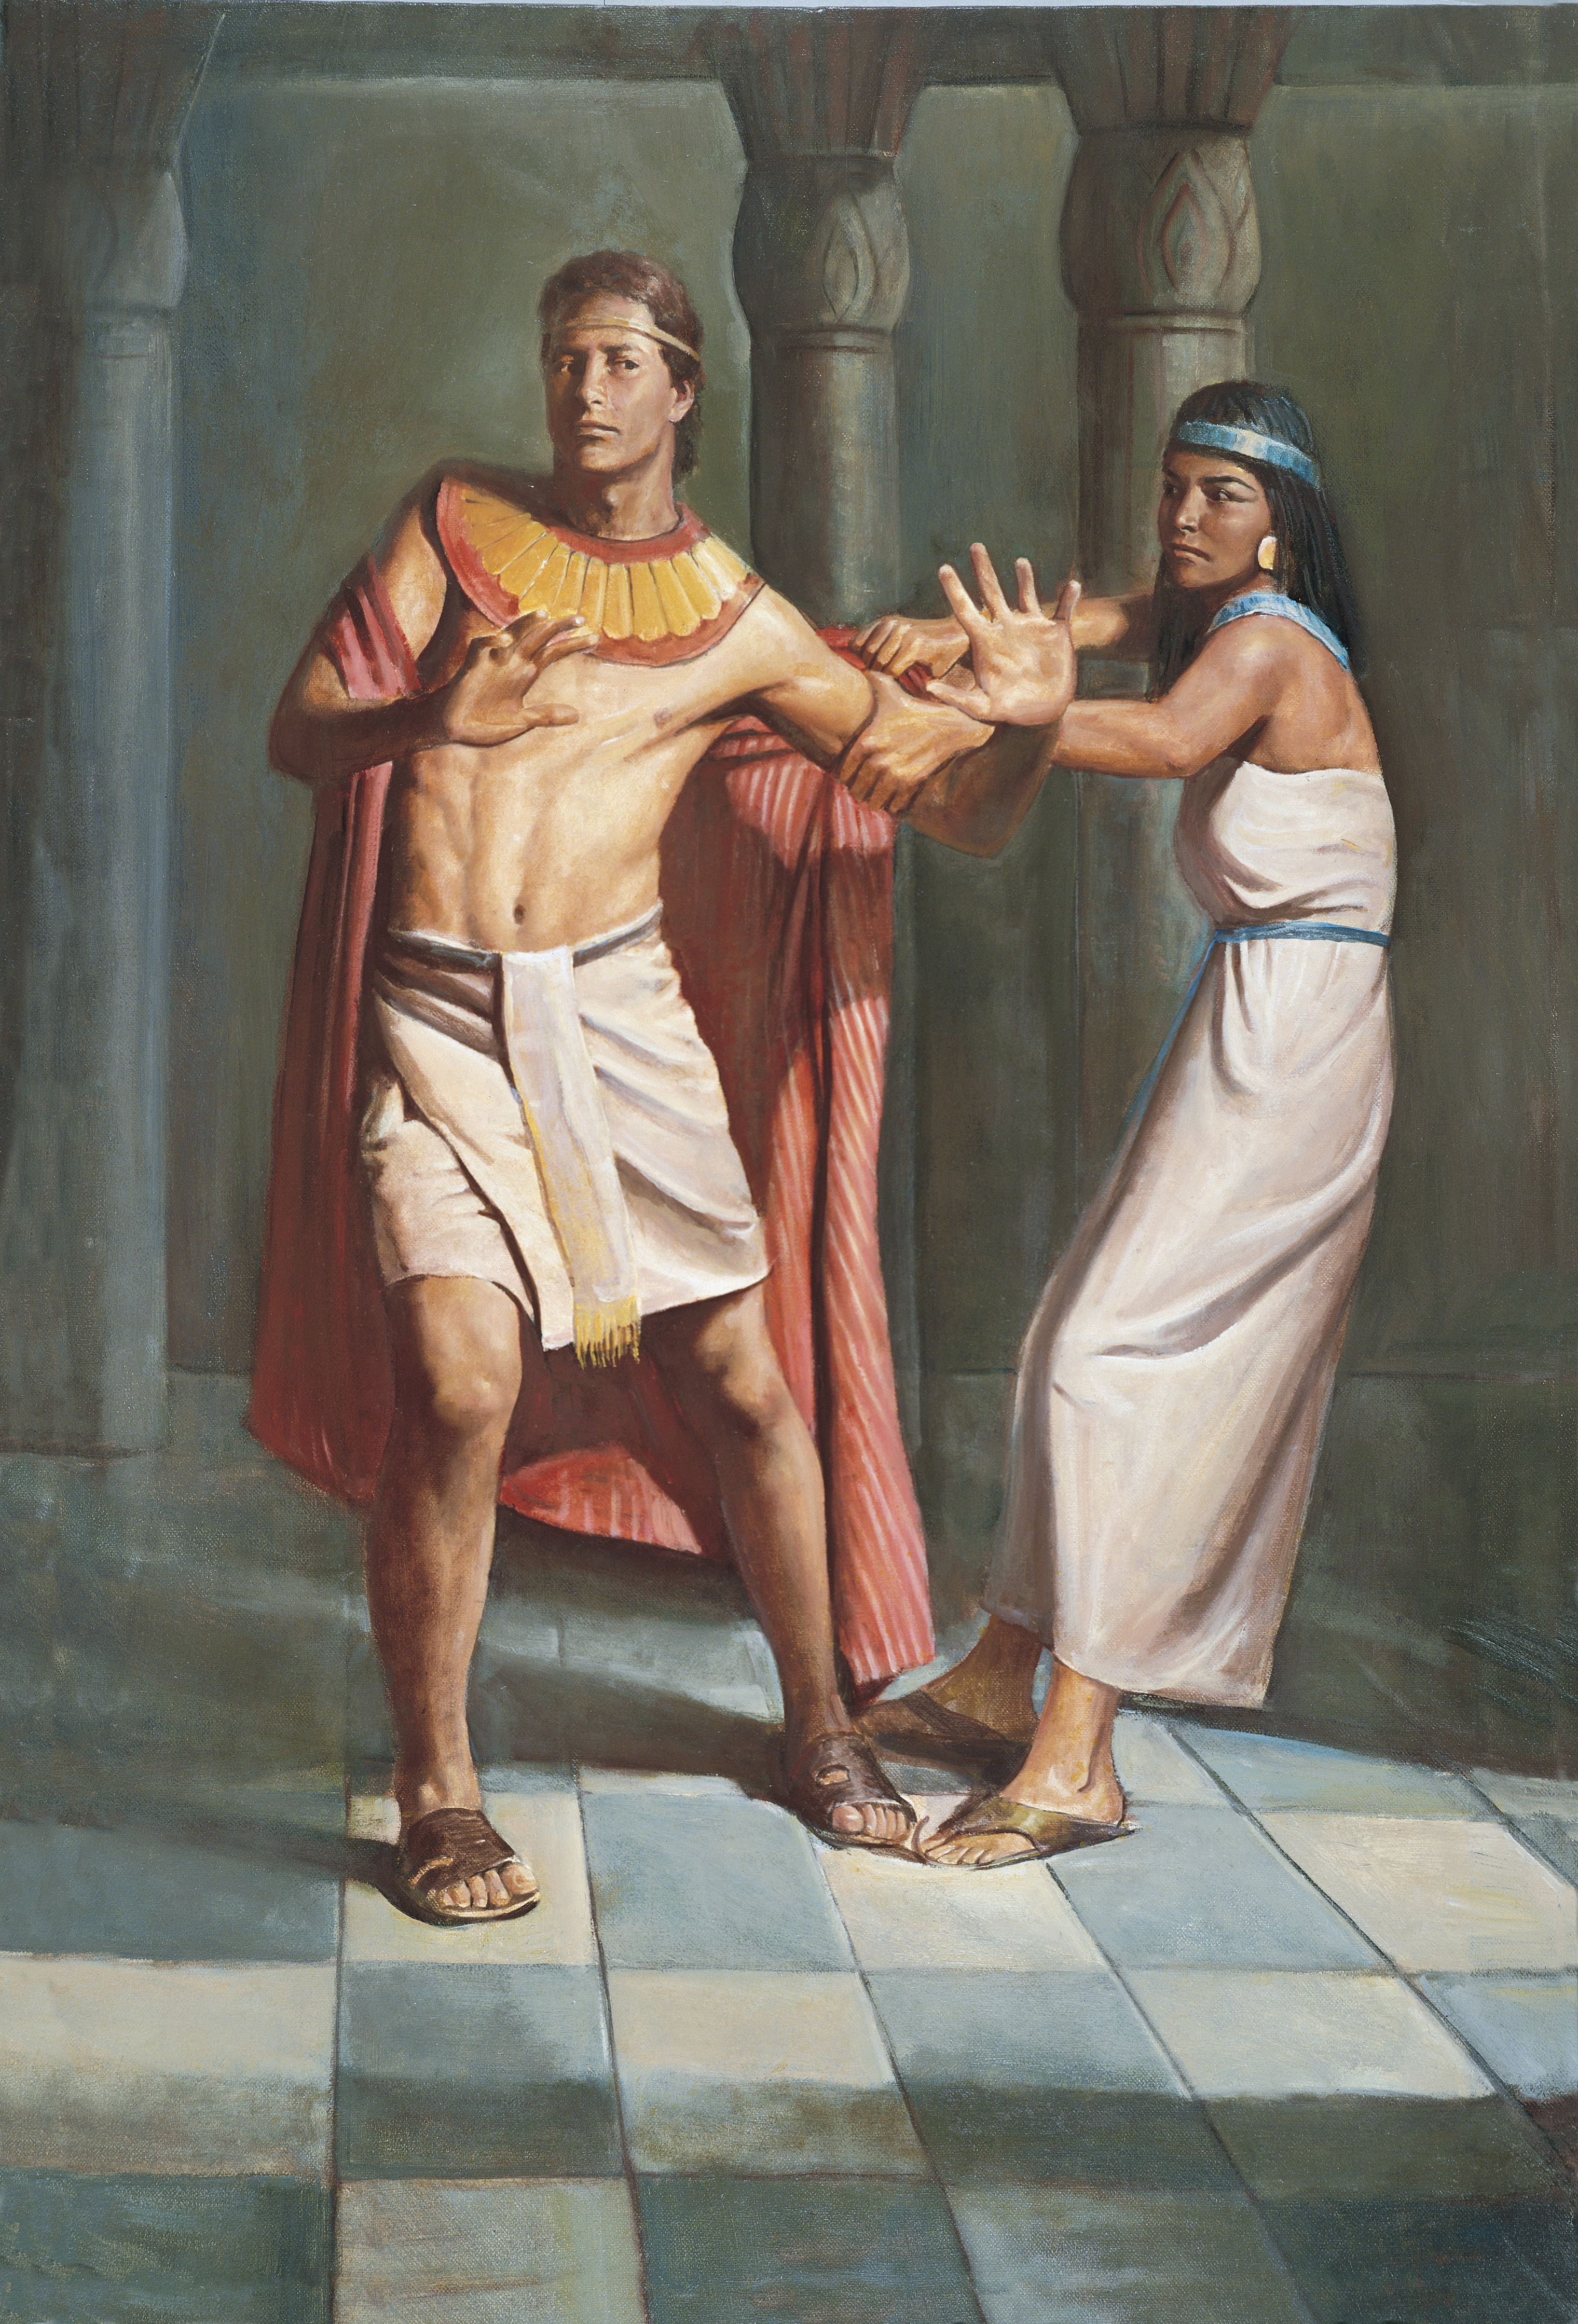 Joseph Resists Potiphar's Wife (Joseph and Potiphar's Wife), by Del Parson (62548); GAK 110; GAB 11; Primary manual 6-18; Genesis 39